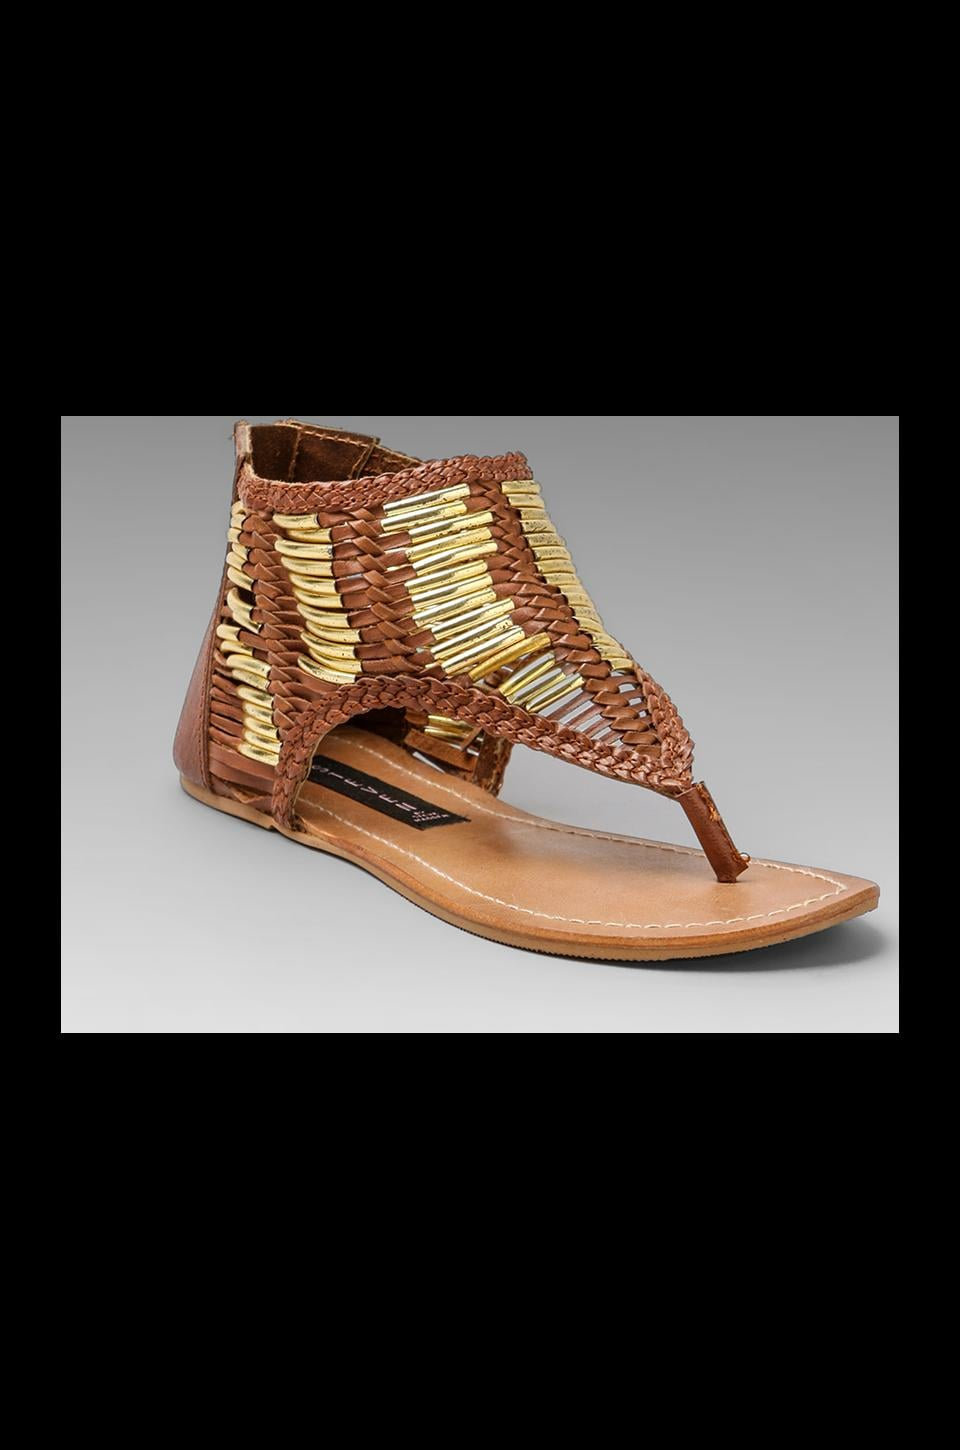 Steven Vega Sandal in Bone Multi